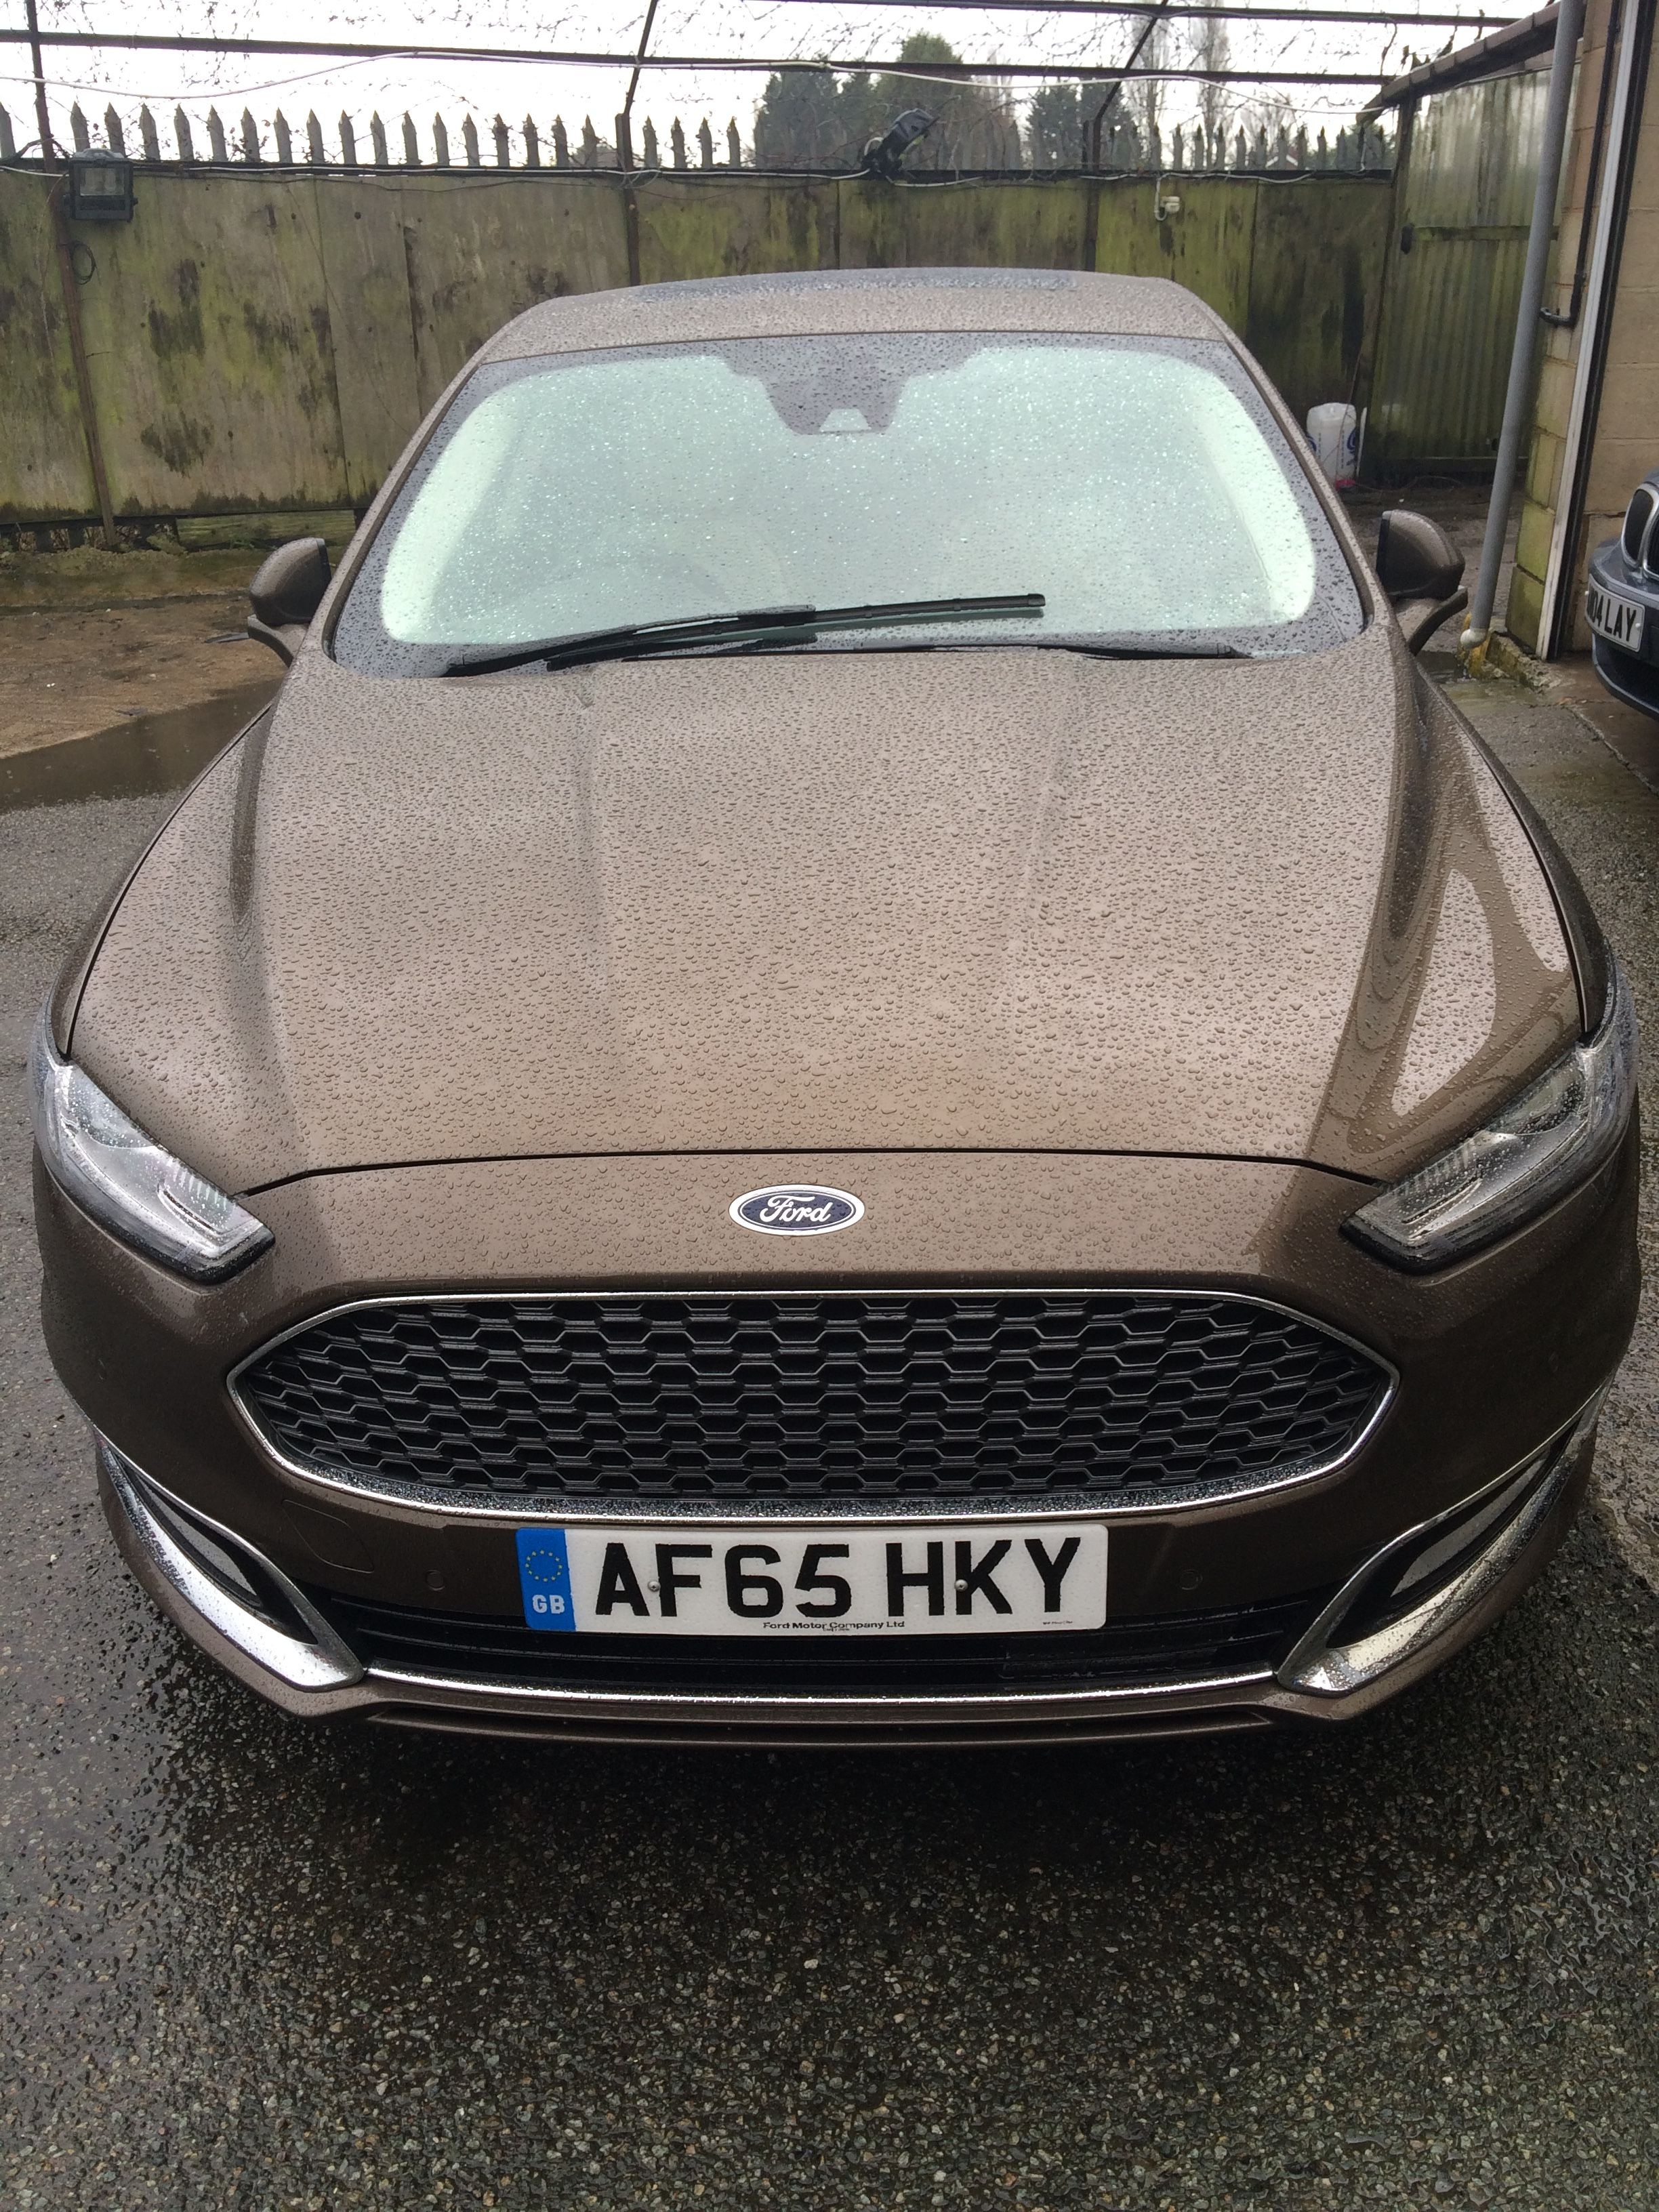 The Ford Mondeo Vignale Carleasing Deal One Of The Many Cars